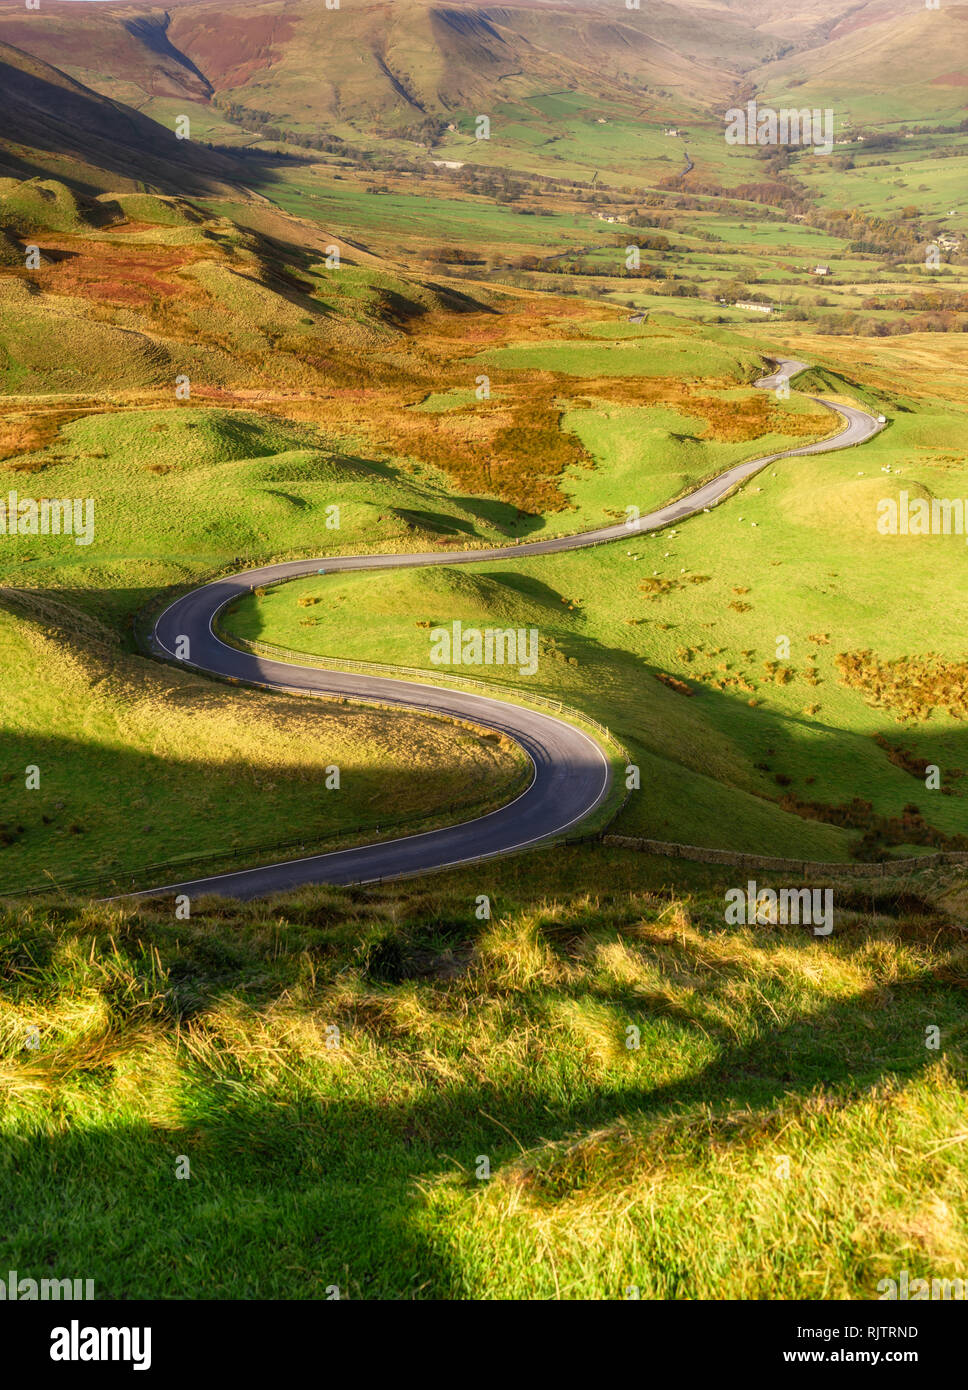 The road winds through a cleft, surrounded by towering limestone pinnacles near winnat pass, Peak district, UK. - Stock Image